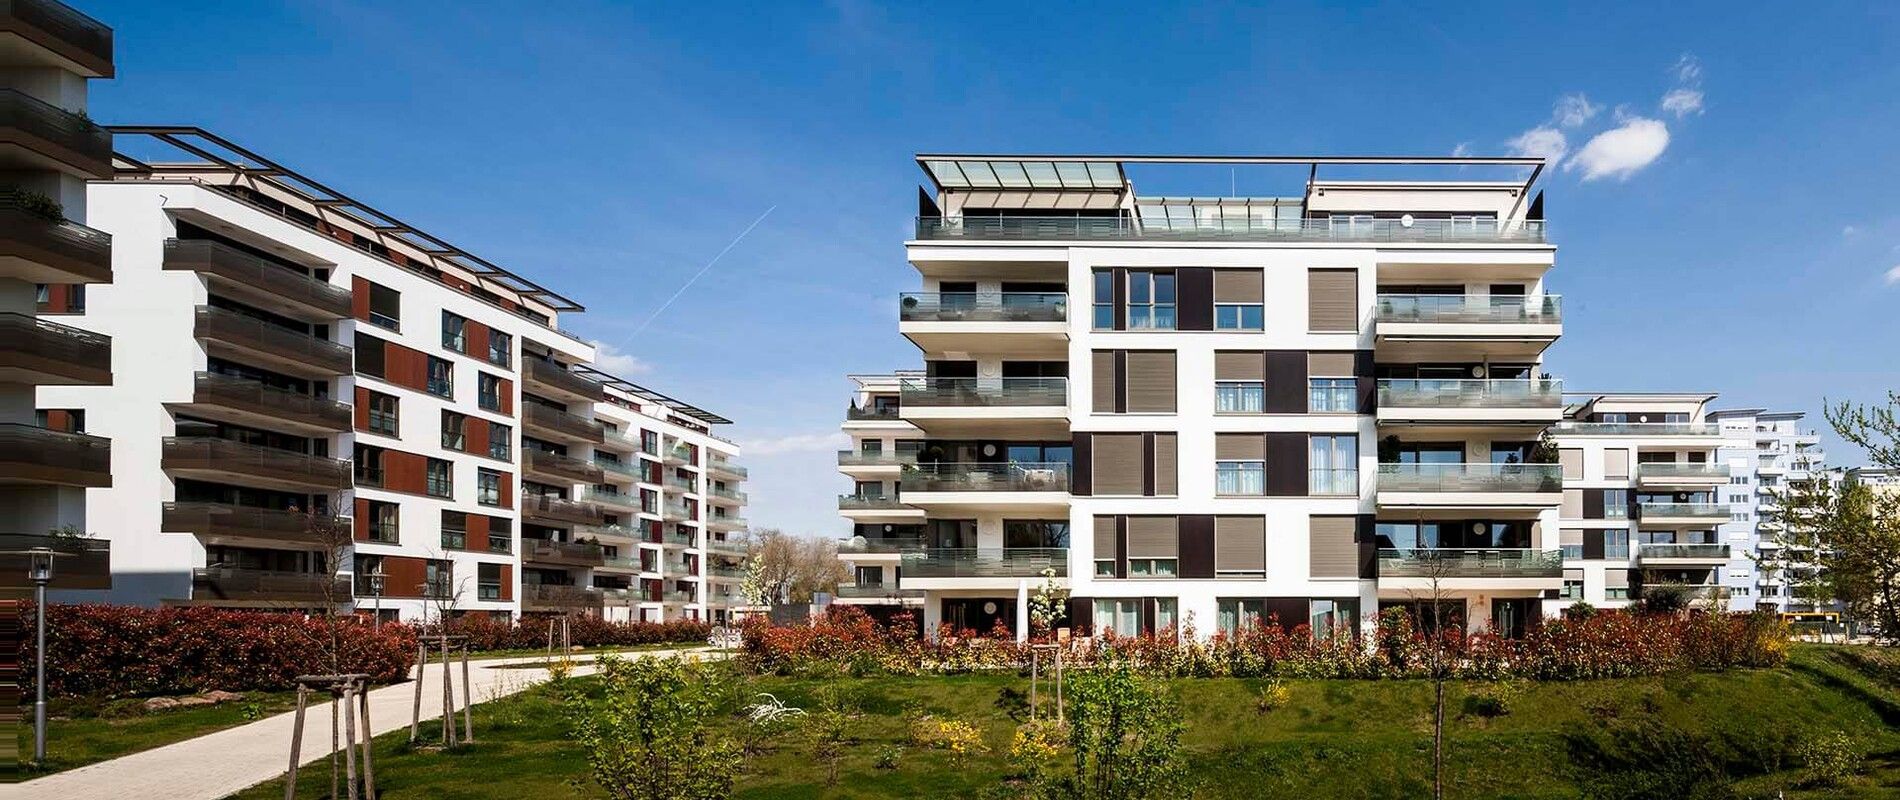 residential complex - Residential Park Niederfeld - overview - central courtyard